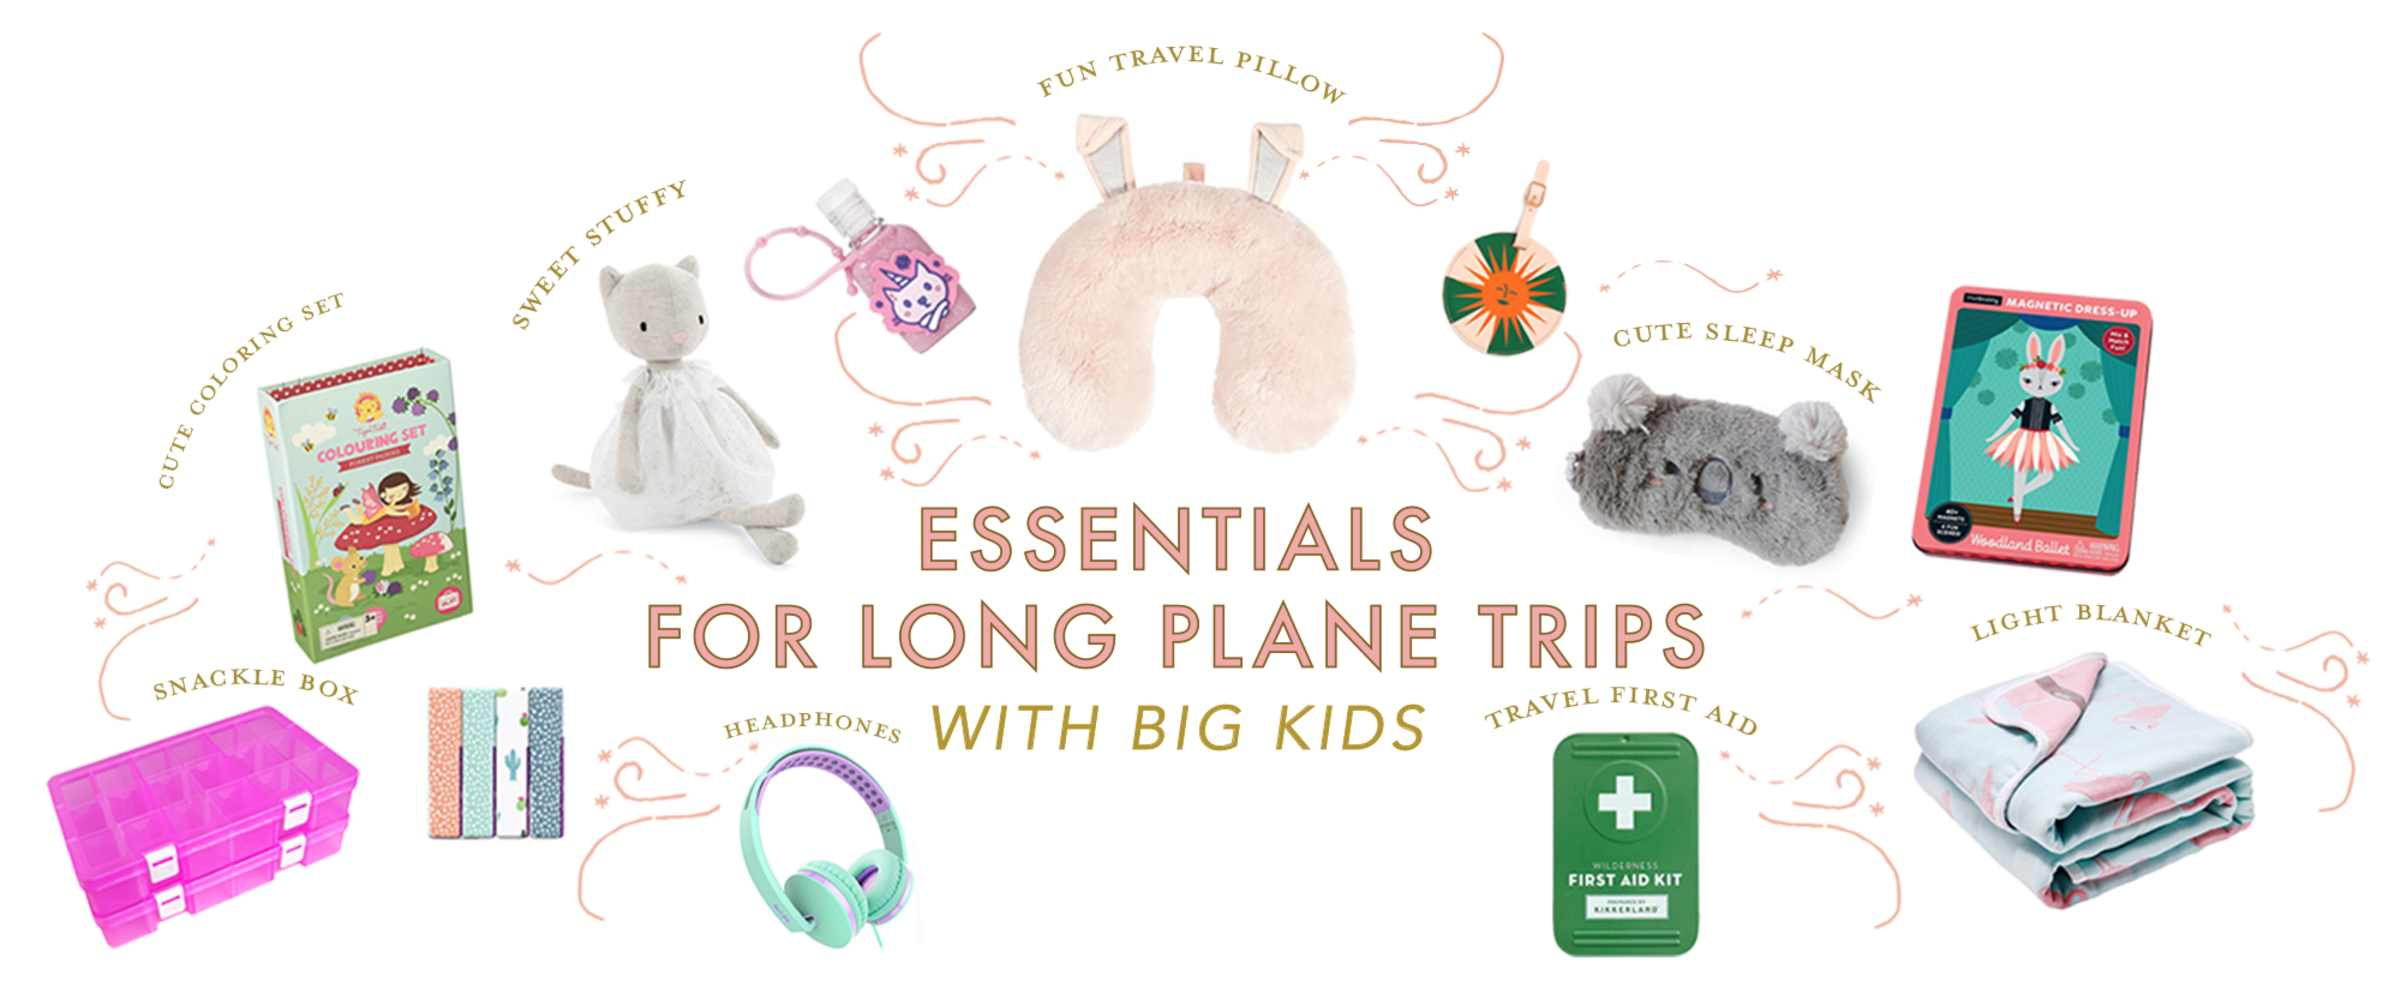 Essentials and Tips for Long Plane Trips with Big Kids